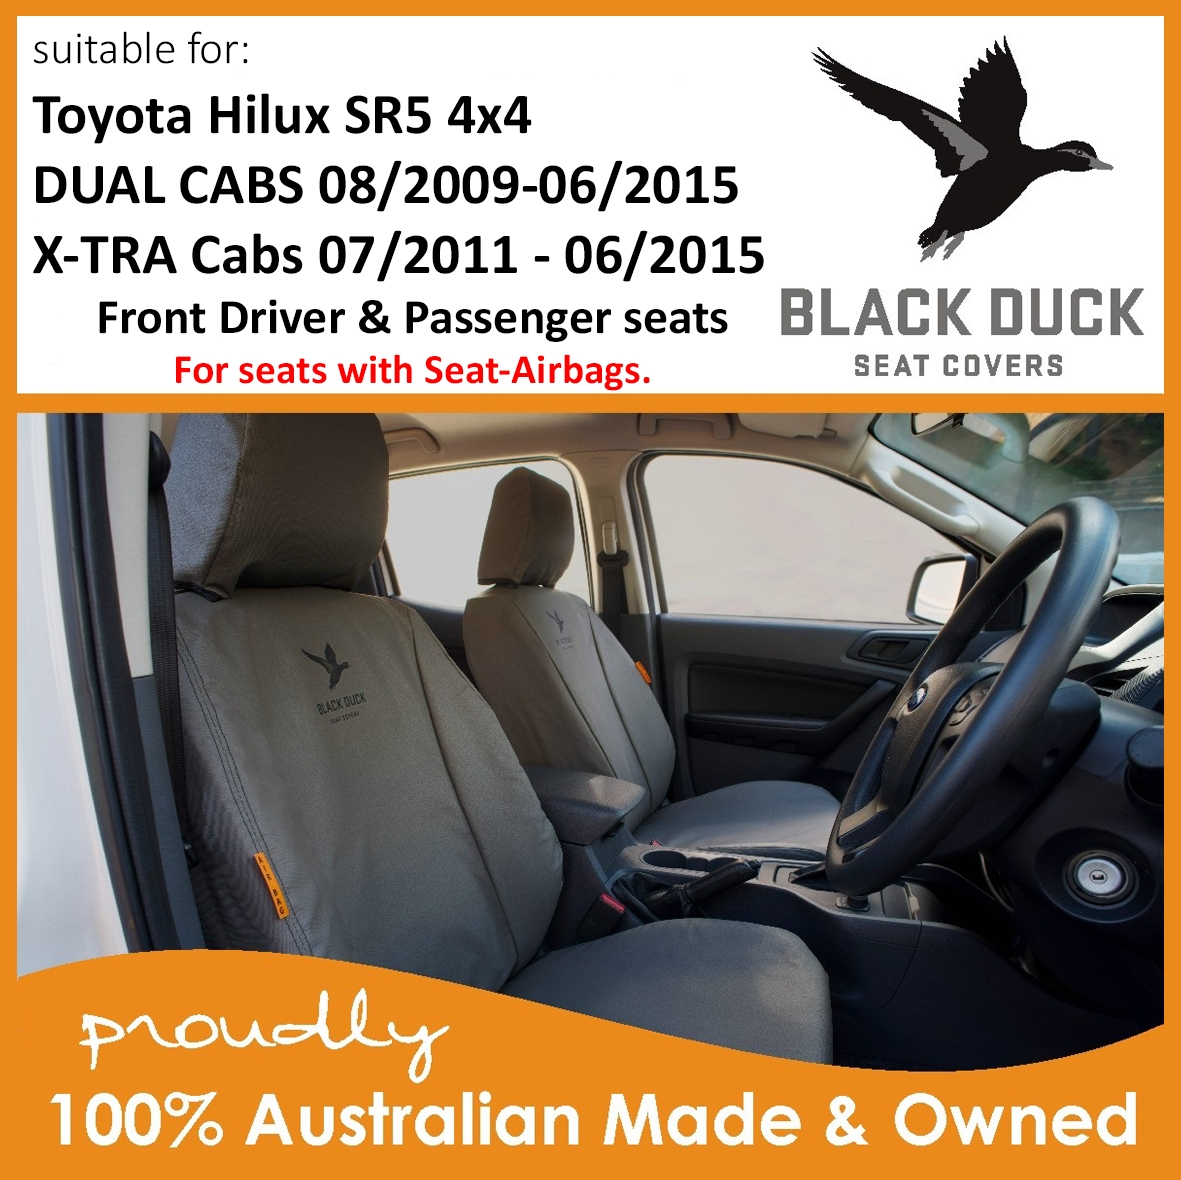 BLACK DUCK SEAT COVERS suitable for TOYOTA HILUX SR5 4x4 utes